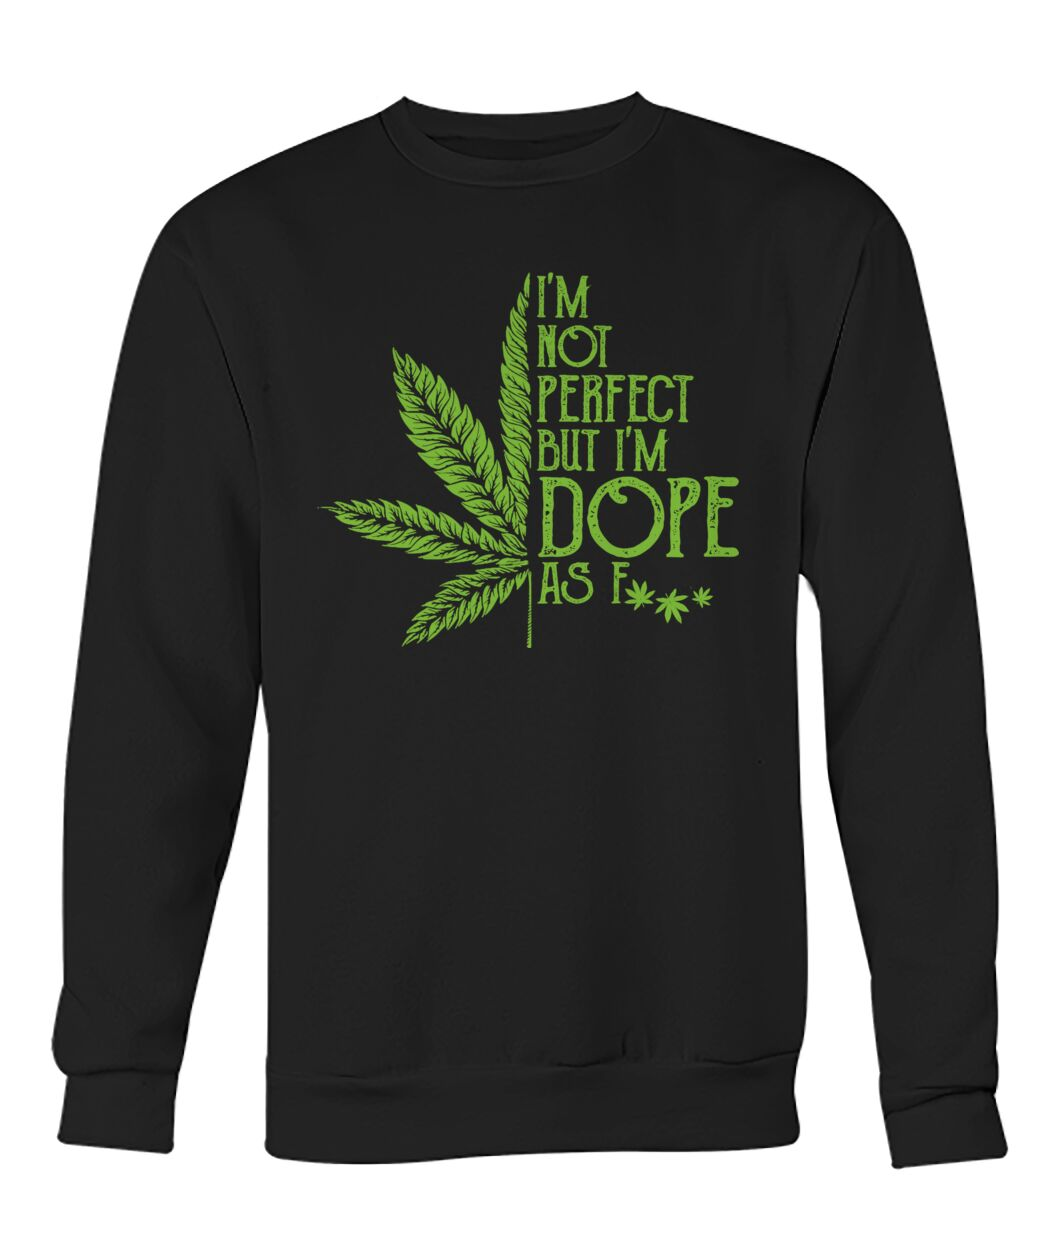 I'm Not Perfect But I'm Dope As Fuck Weed sweatshirt